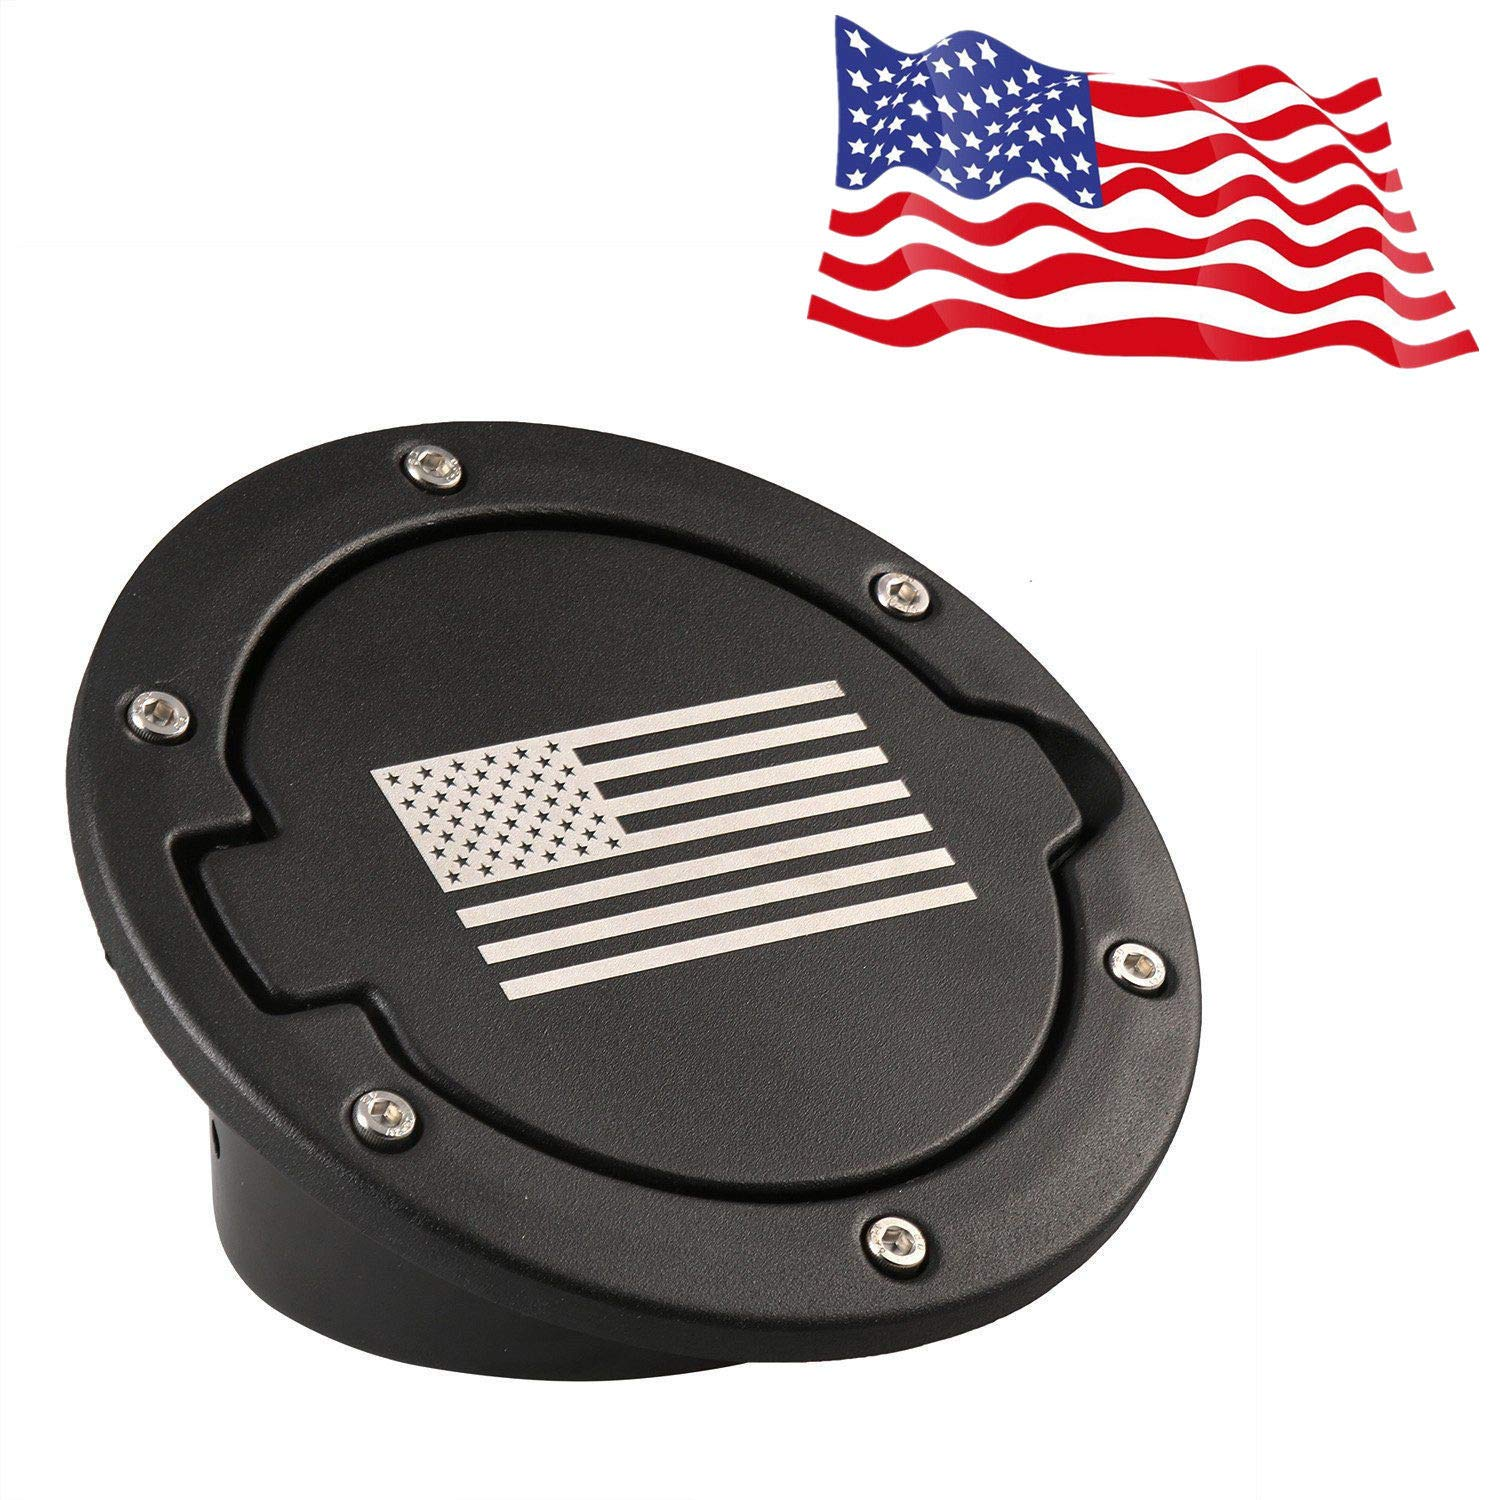 Soosee Steel Gas Fuel Tank Cap Cover for Jeep Wrangler JK JKU Unlimited Rubicon Sahara X Off Road Sport Exterior Accessories Parts 2007-2017